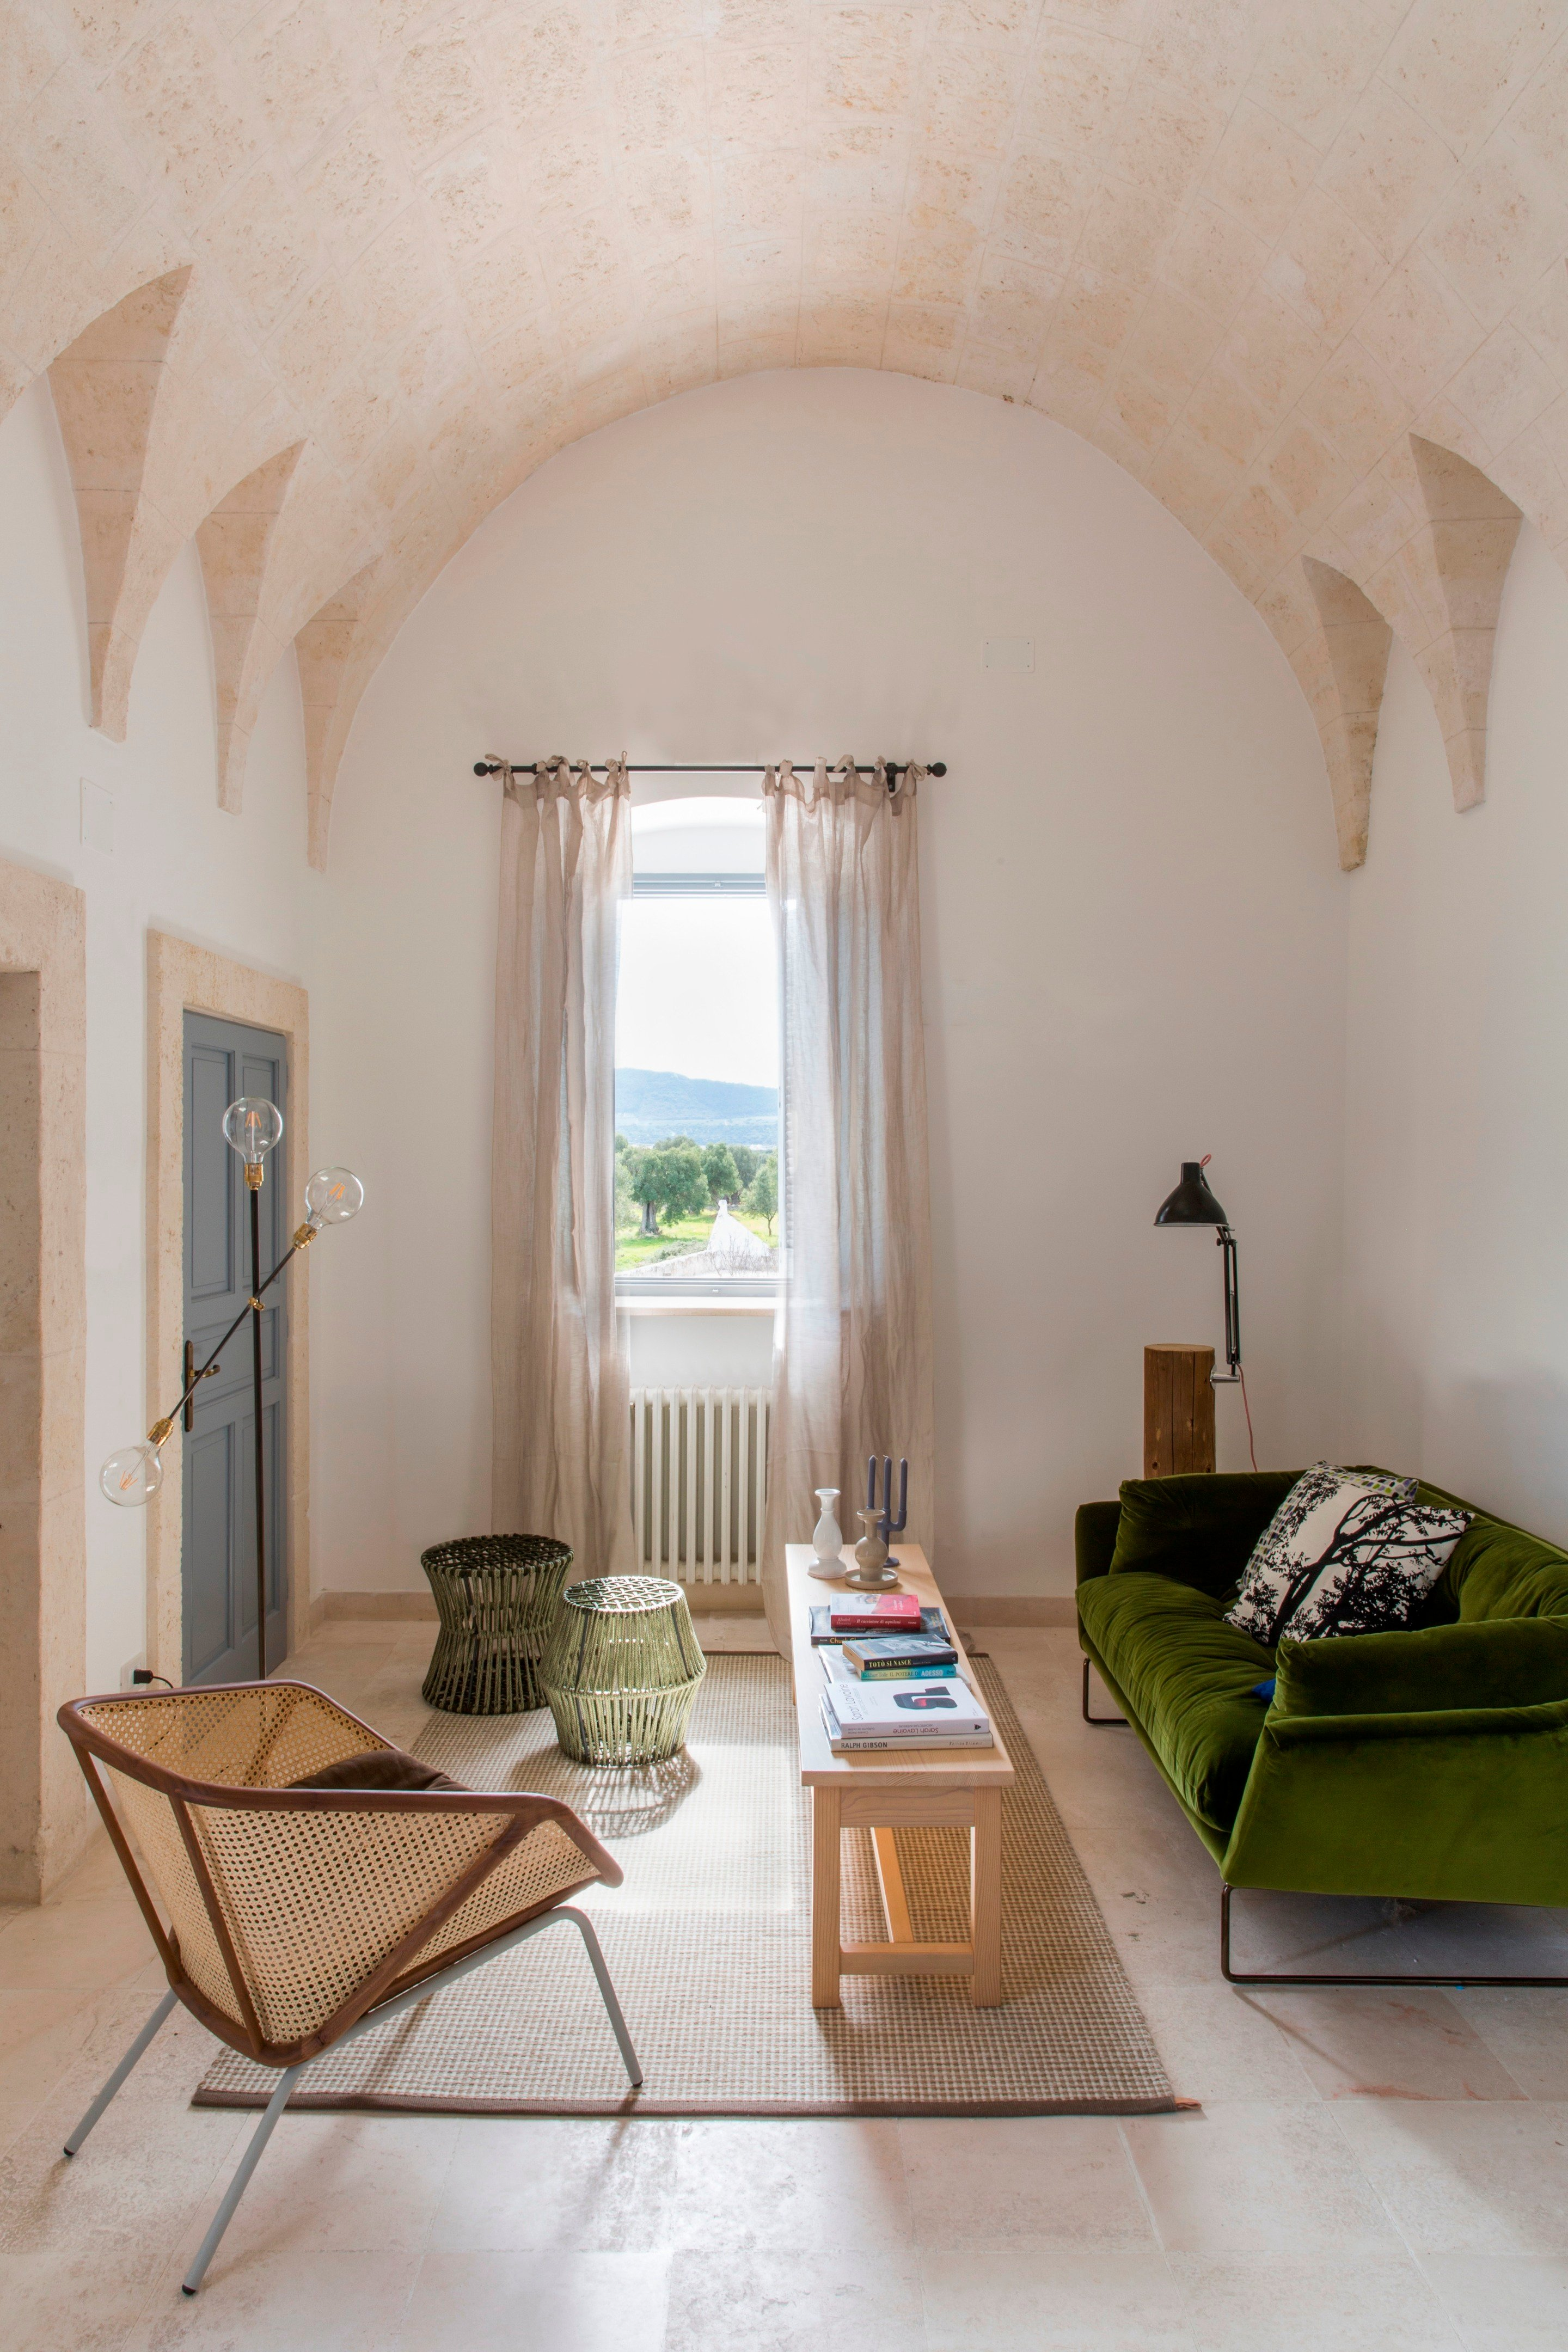 How beautiful is this arched Italian ceiling in the Masseria San Giovanni from archilovers? This space is actually a hotel, so all I really need to know is...when is check-in??? #arch #designtrend #interiors #organicmodern #livingroom